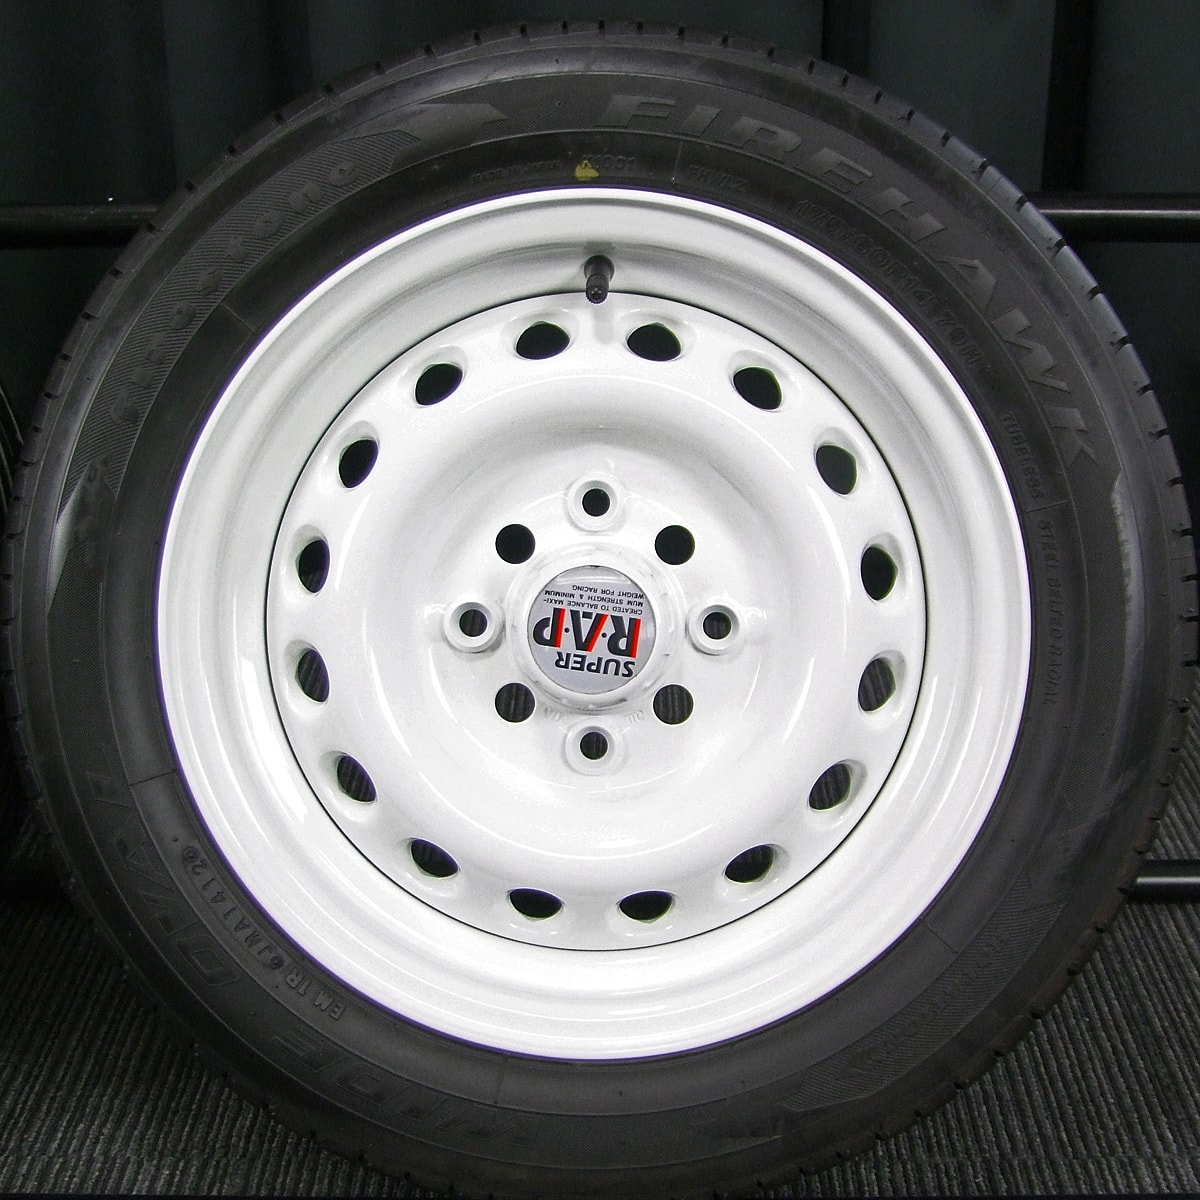 BRIDGESTONE SUPER R.A.P. ホワイト FIRESTONE FIREHAWK WIDE OVAL 175/60R14 4本SET